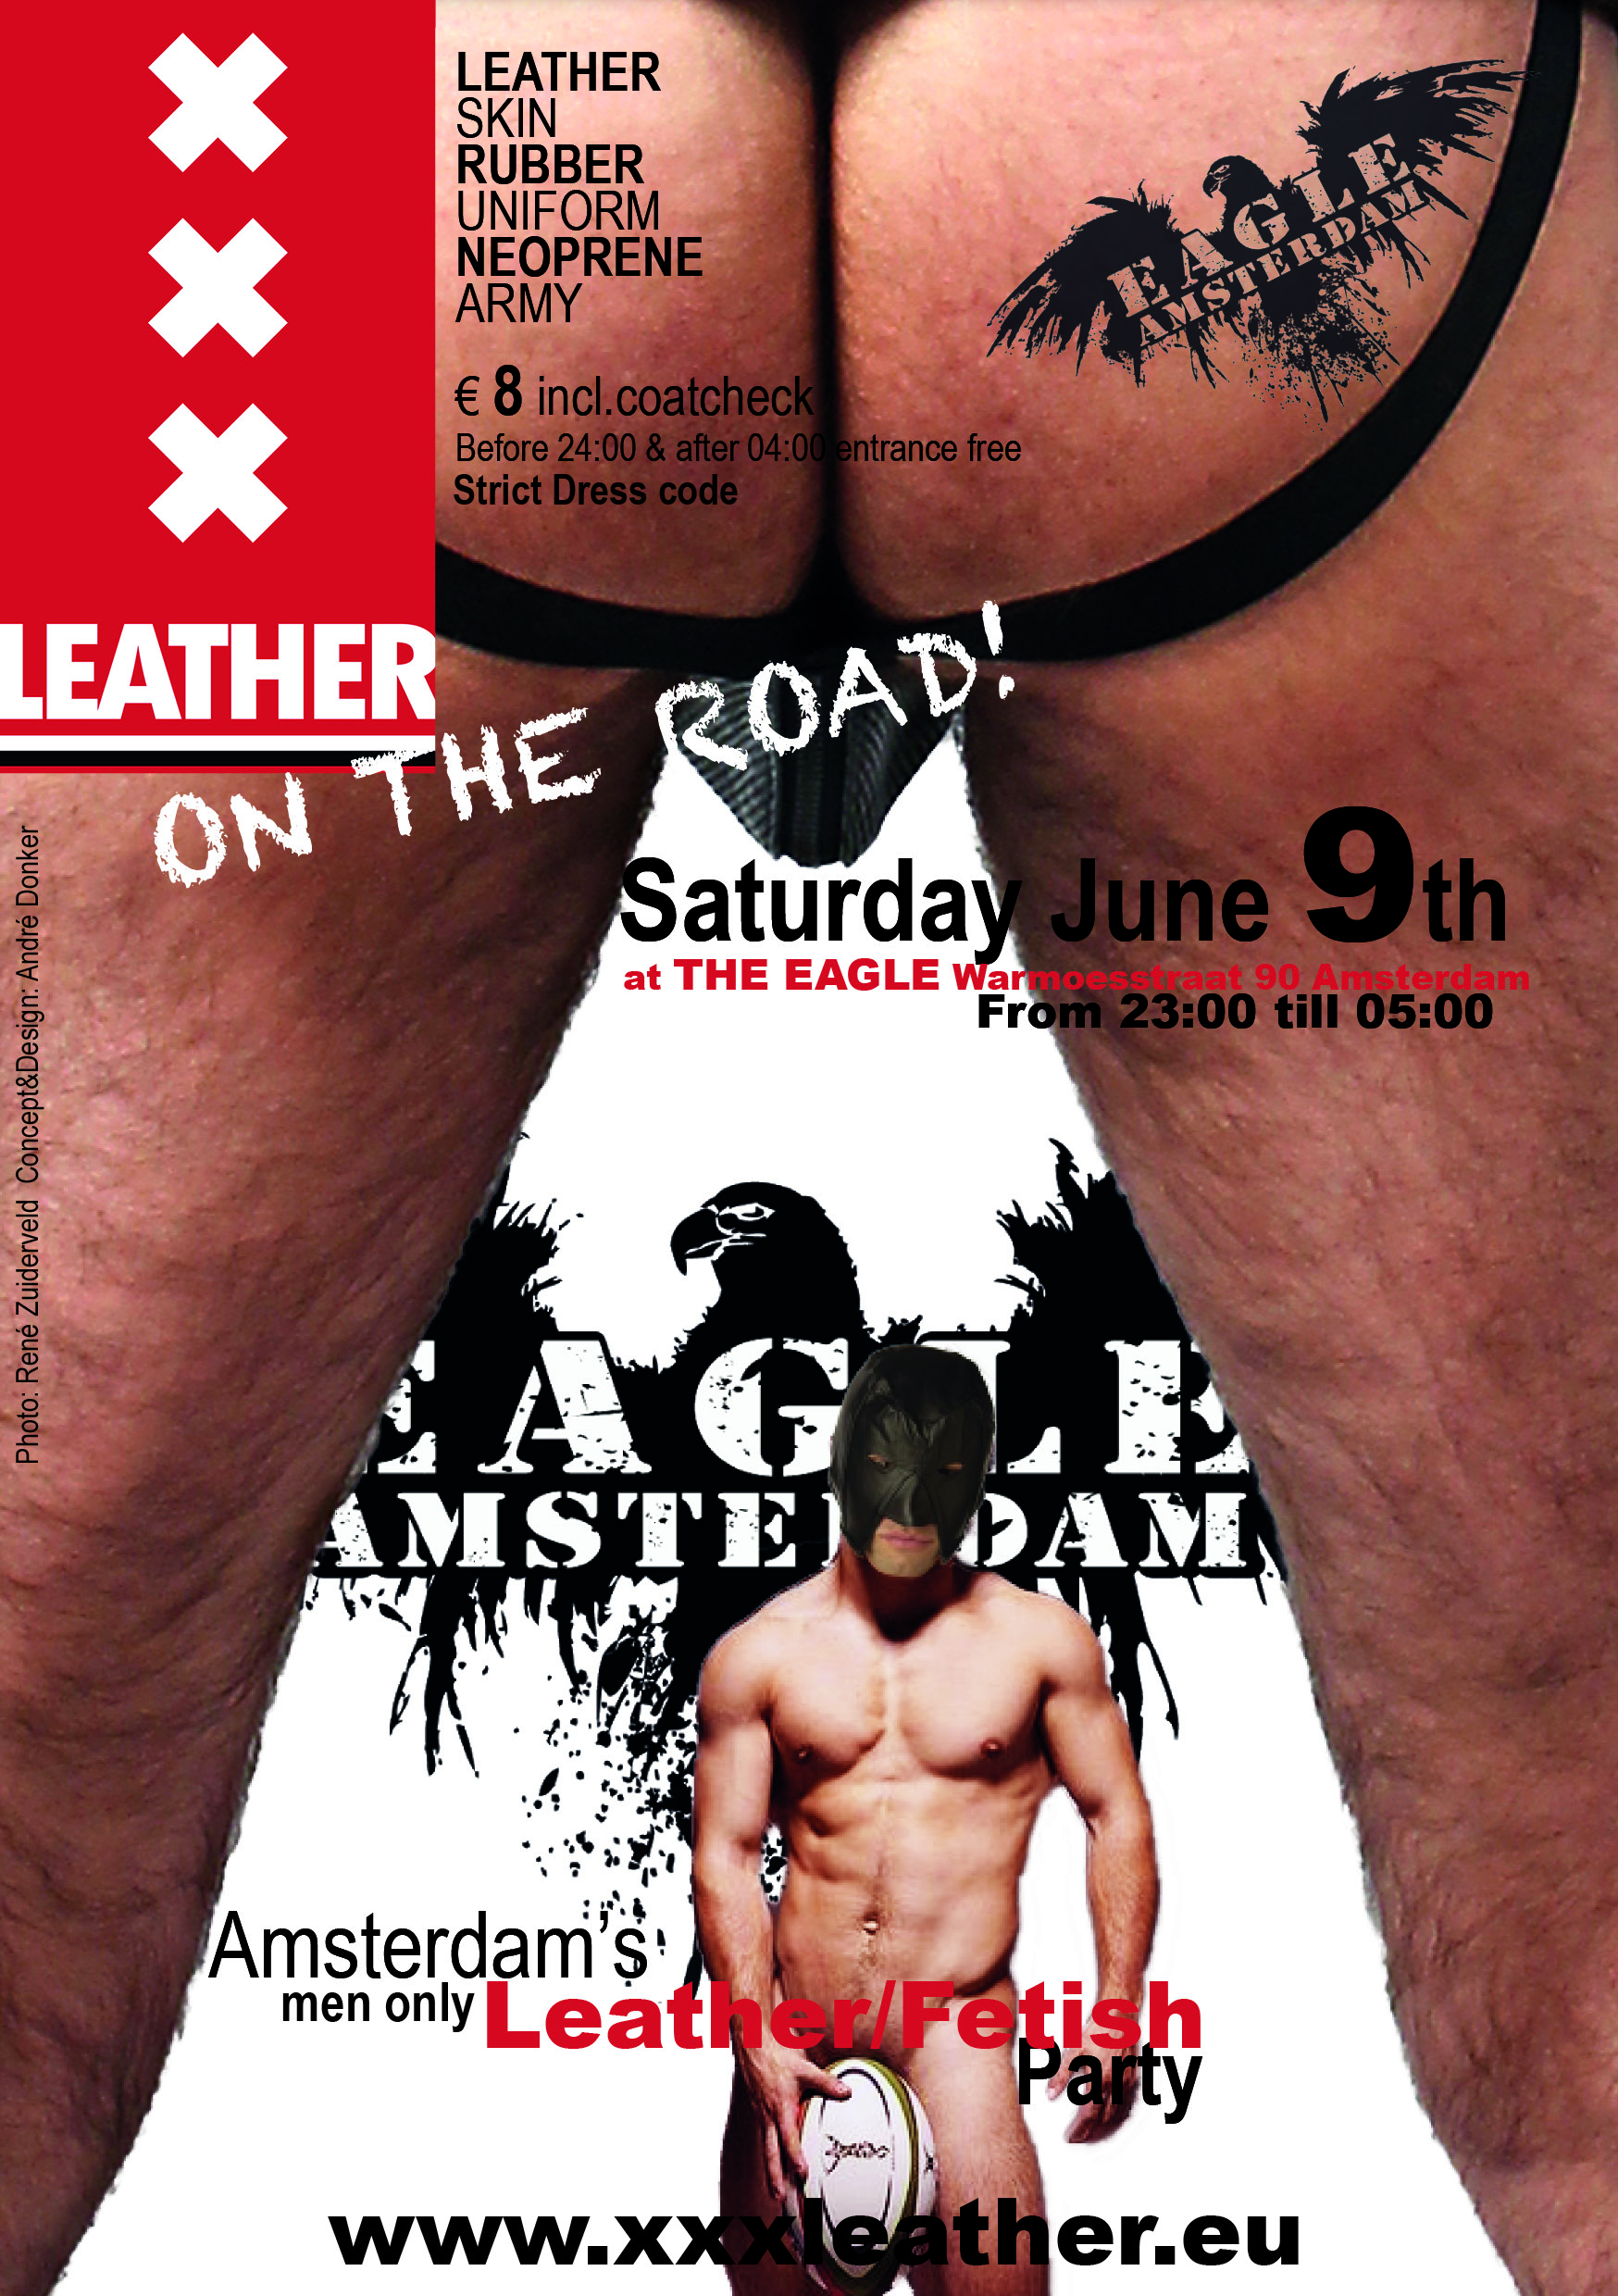 XXXleasther at the Eagle June 9th